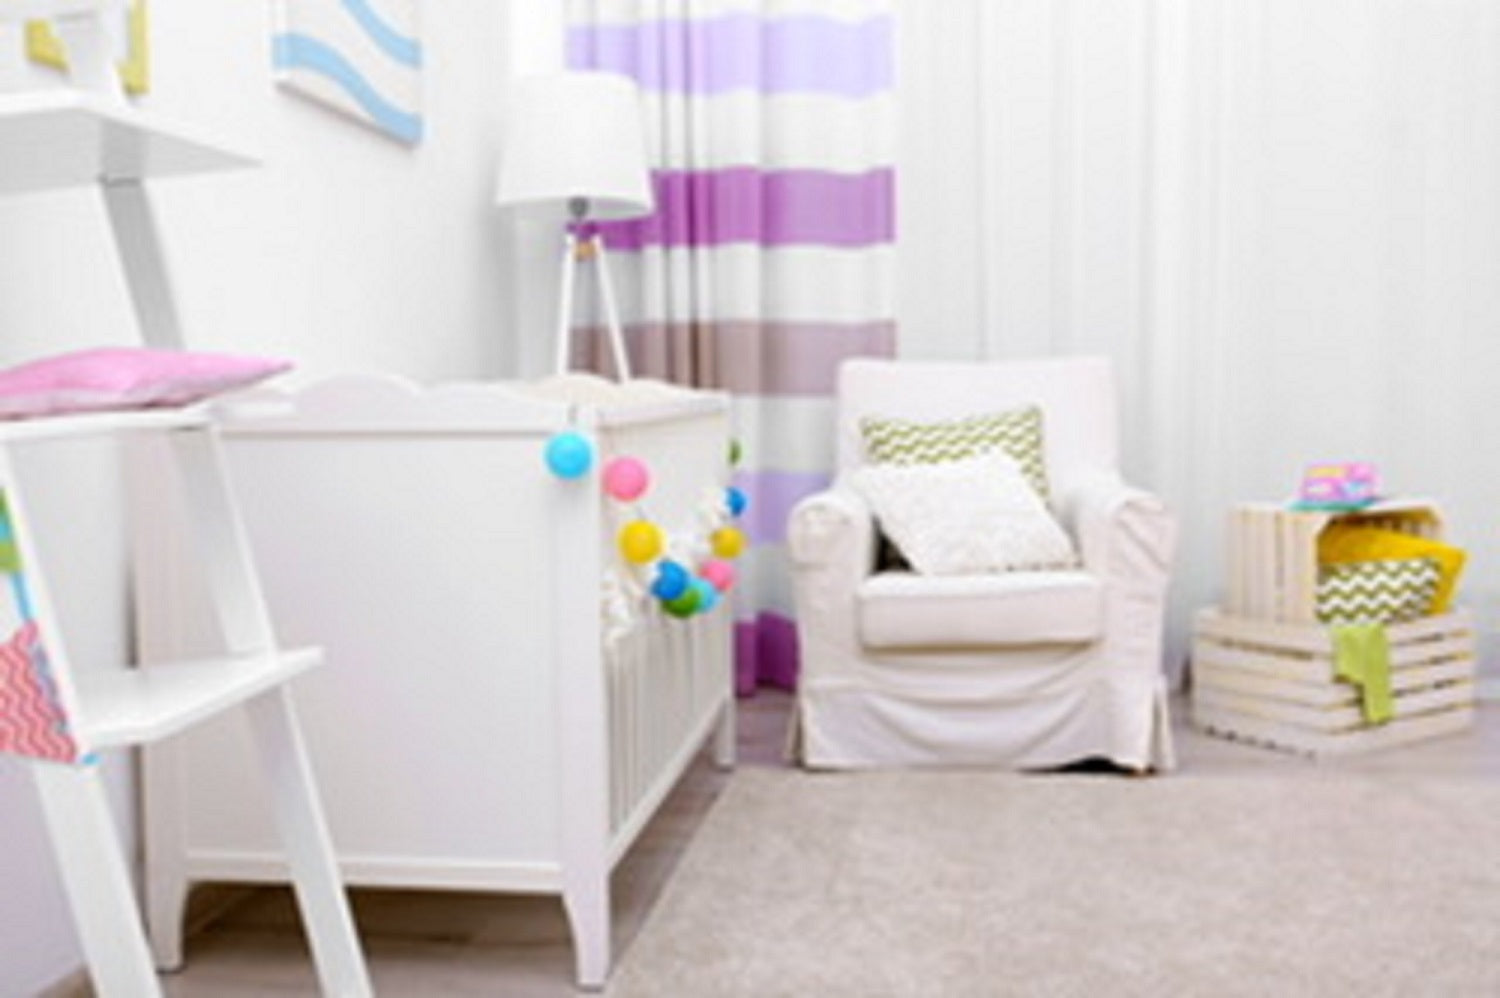 DIY PROJECTS TO GET NURSERY READY FOR BABY